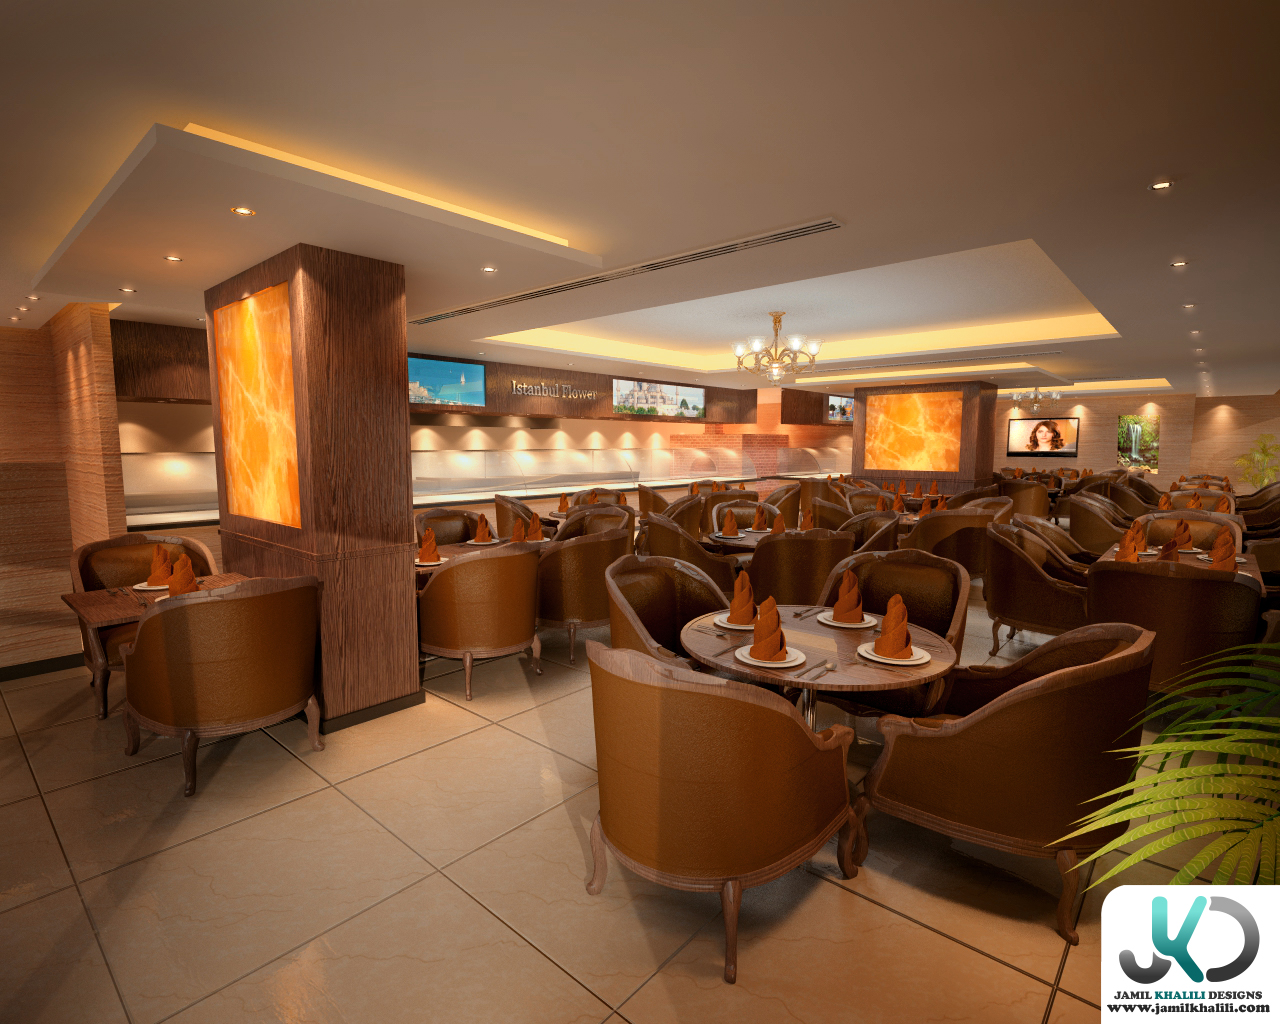 Flower of turkey restaurant uae dubai by jamil khalili